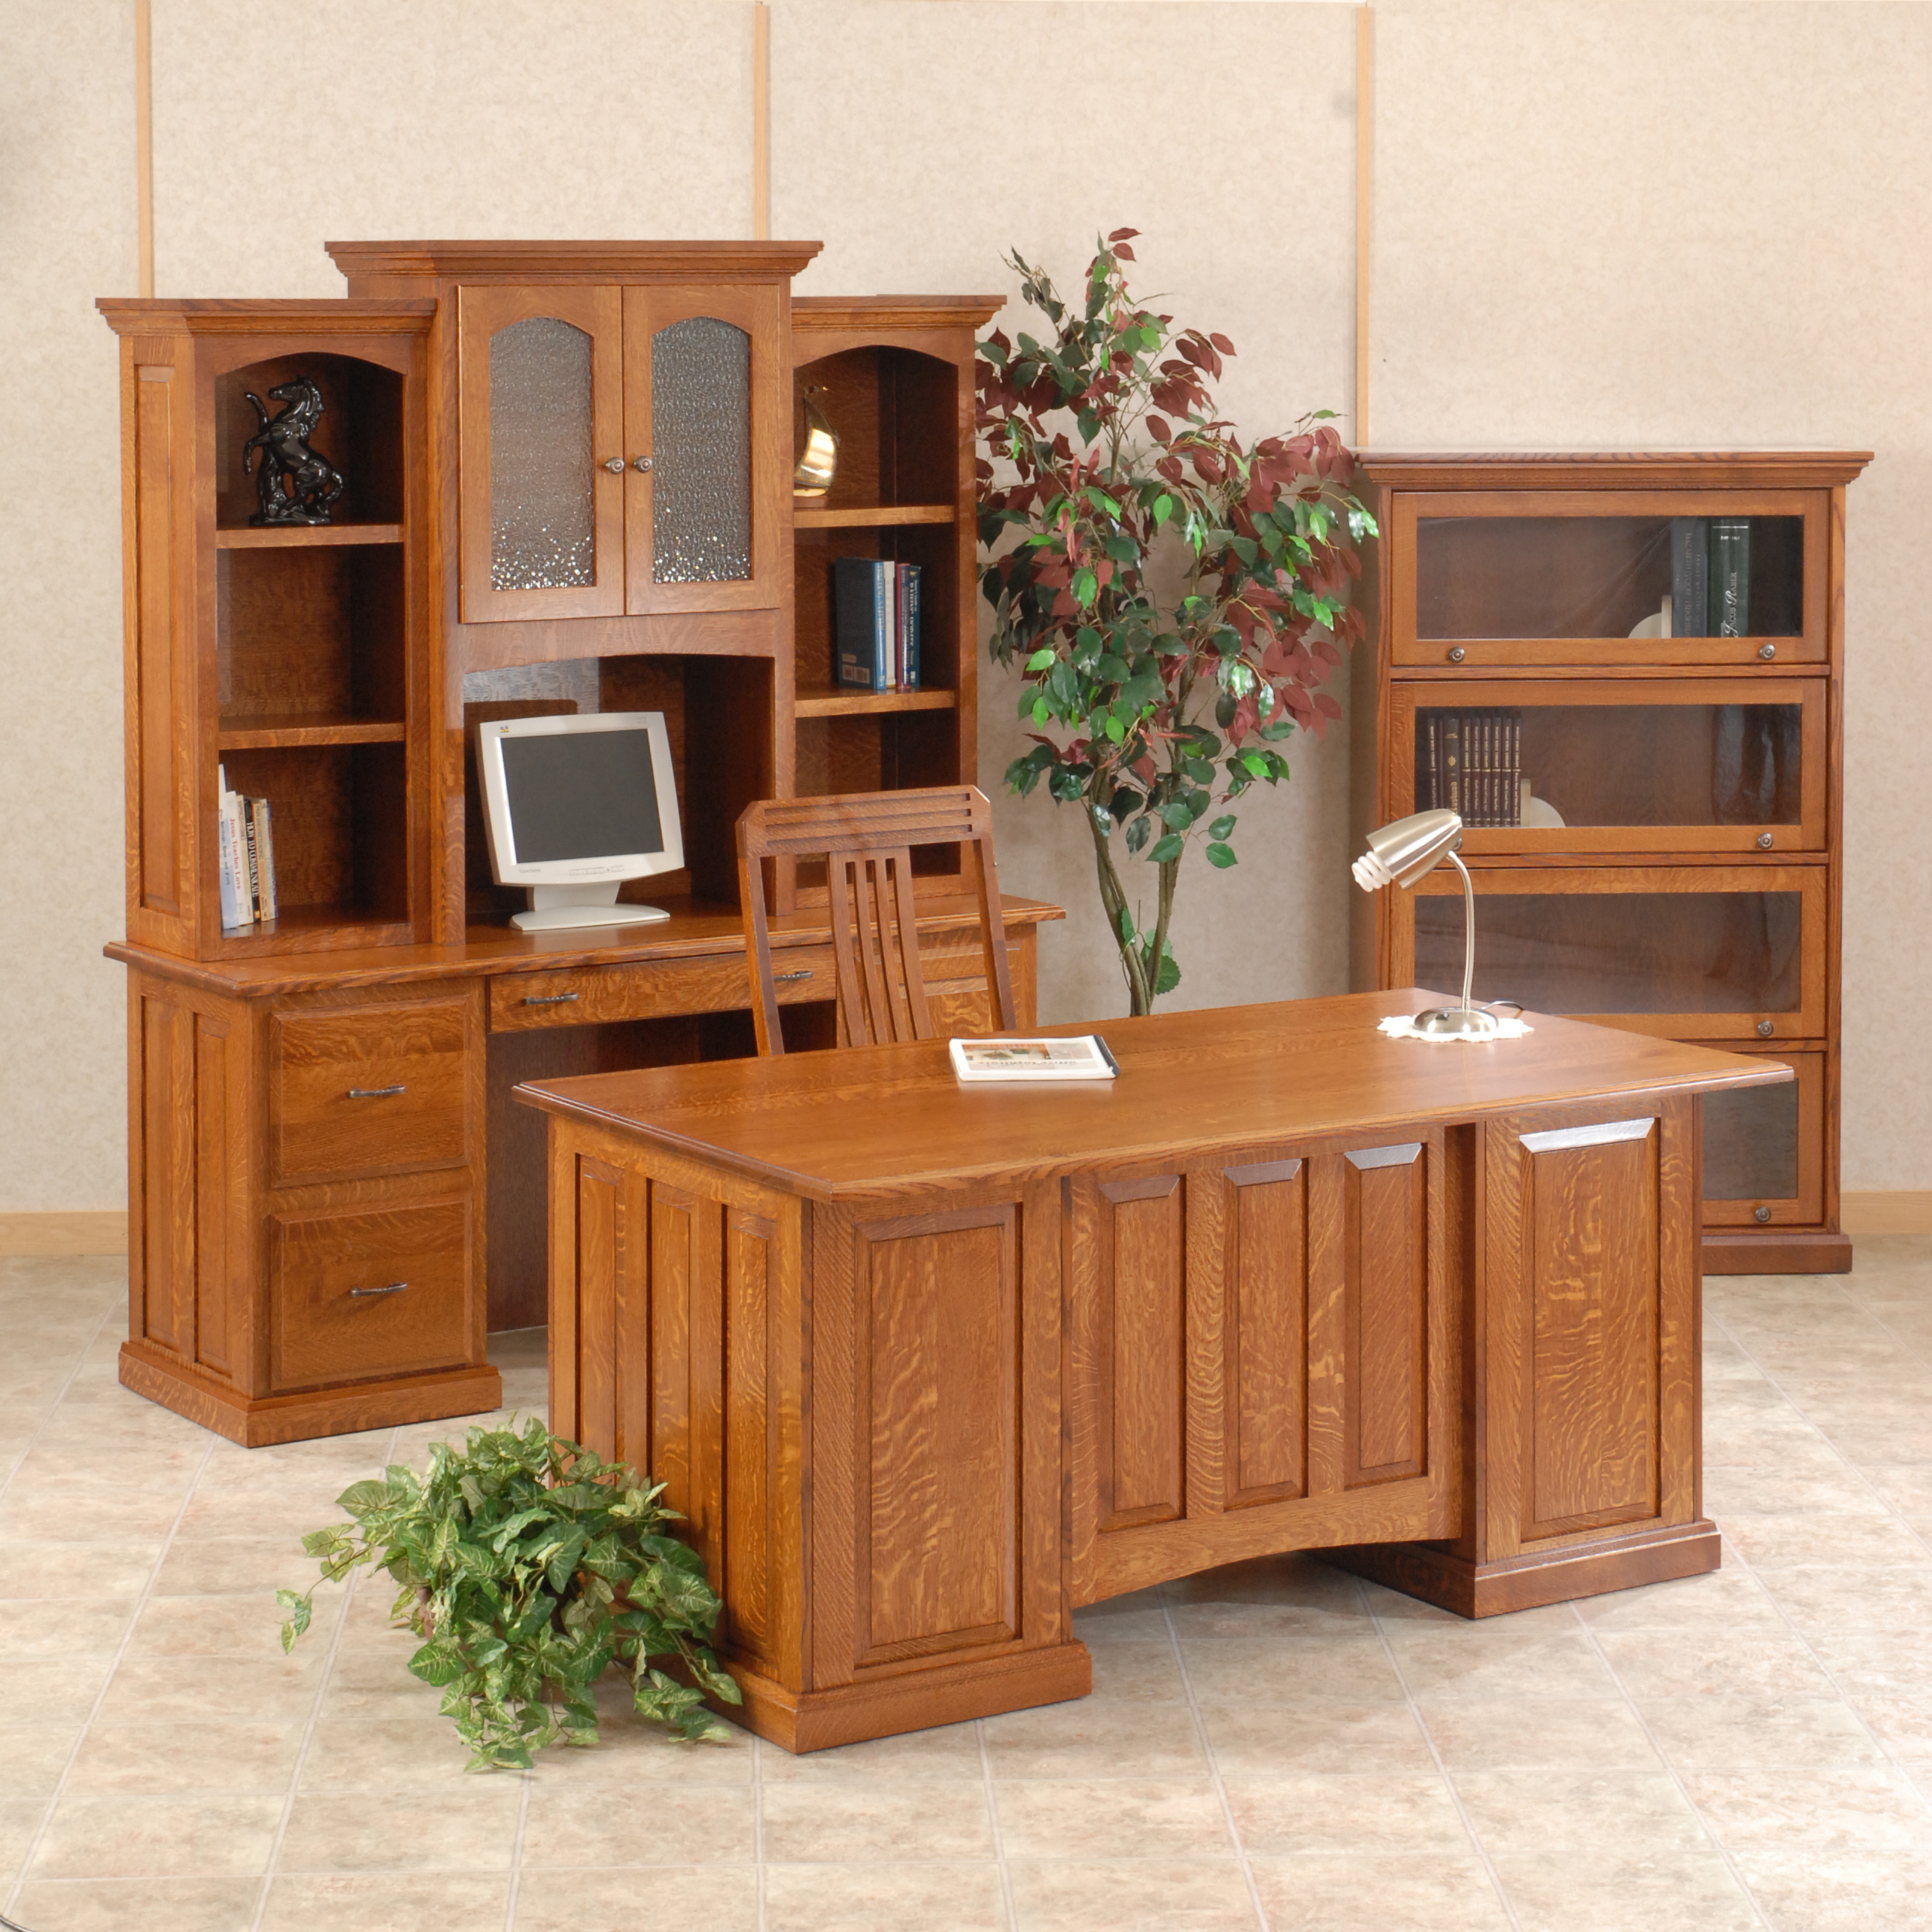 Furniture Store Near Me Discount: Oak Specialists Furniture Coupons Near Me In Belchertown